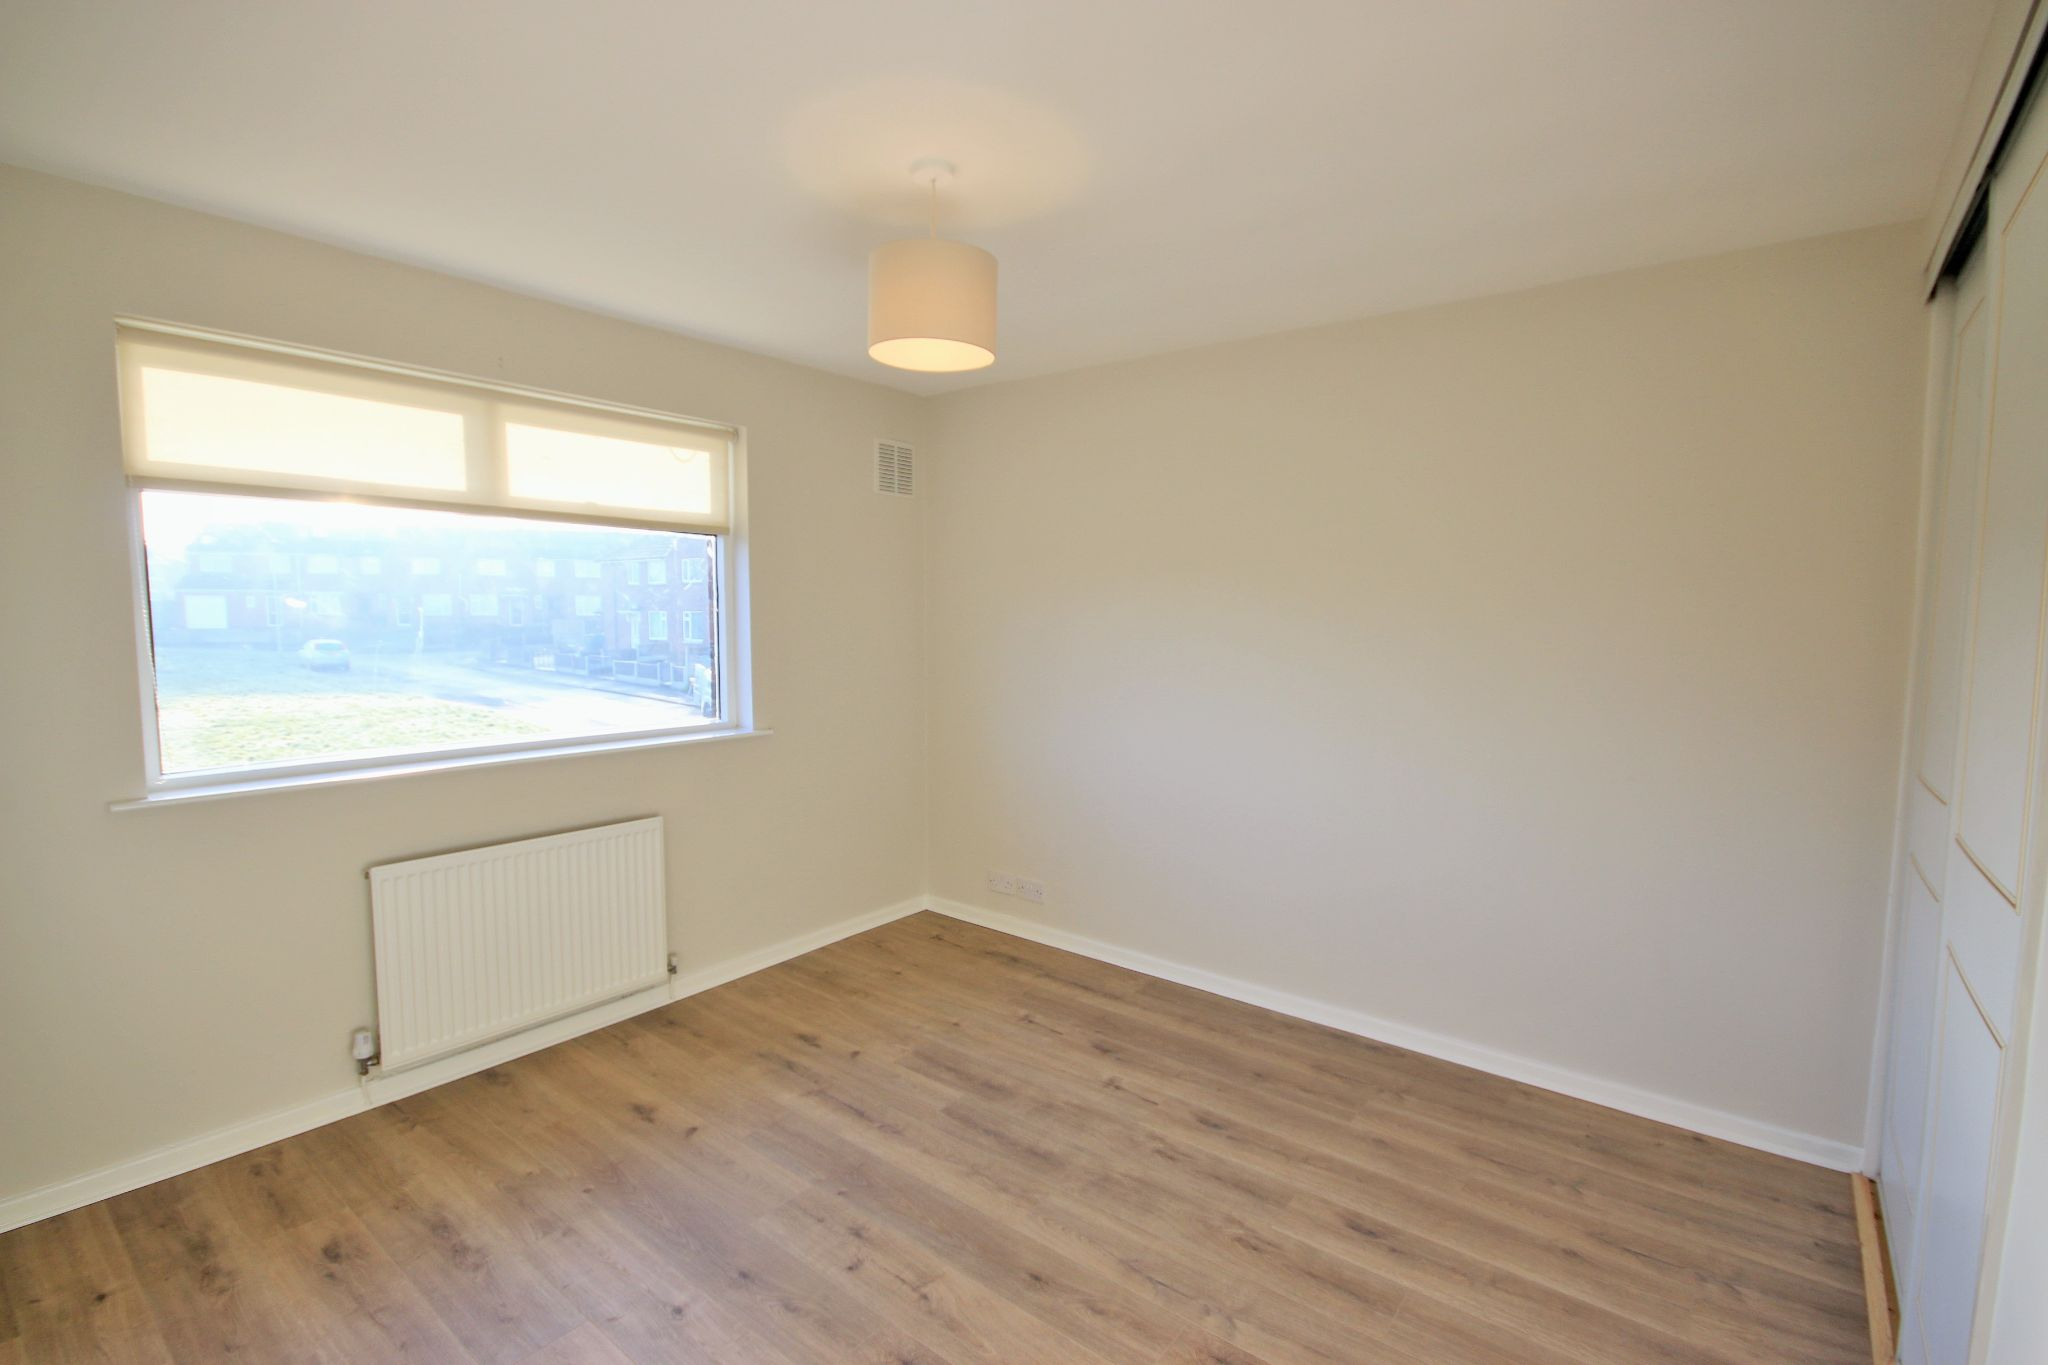 3 Bedroom Semi-detached House For Sale - Photograph 8